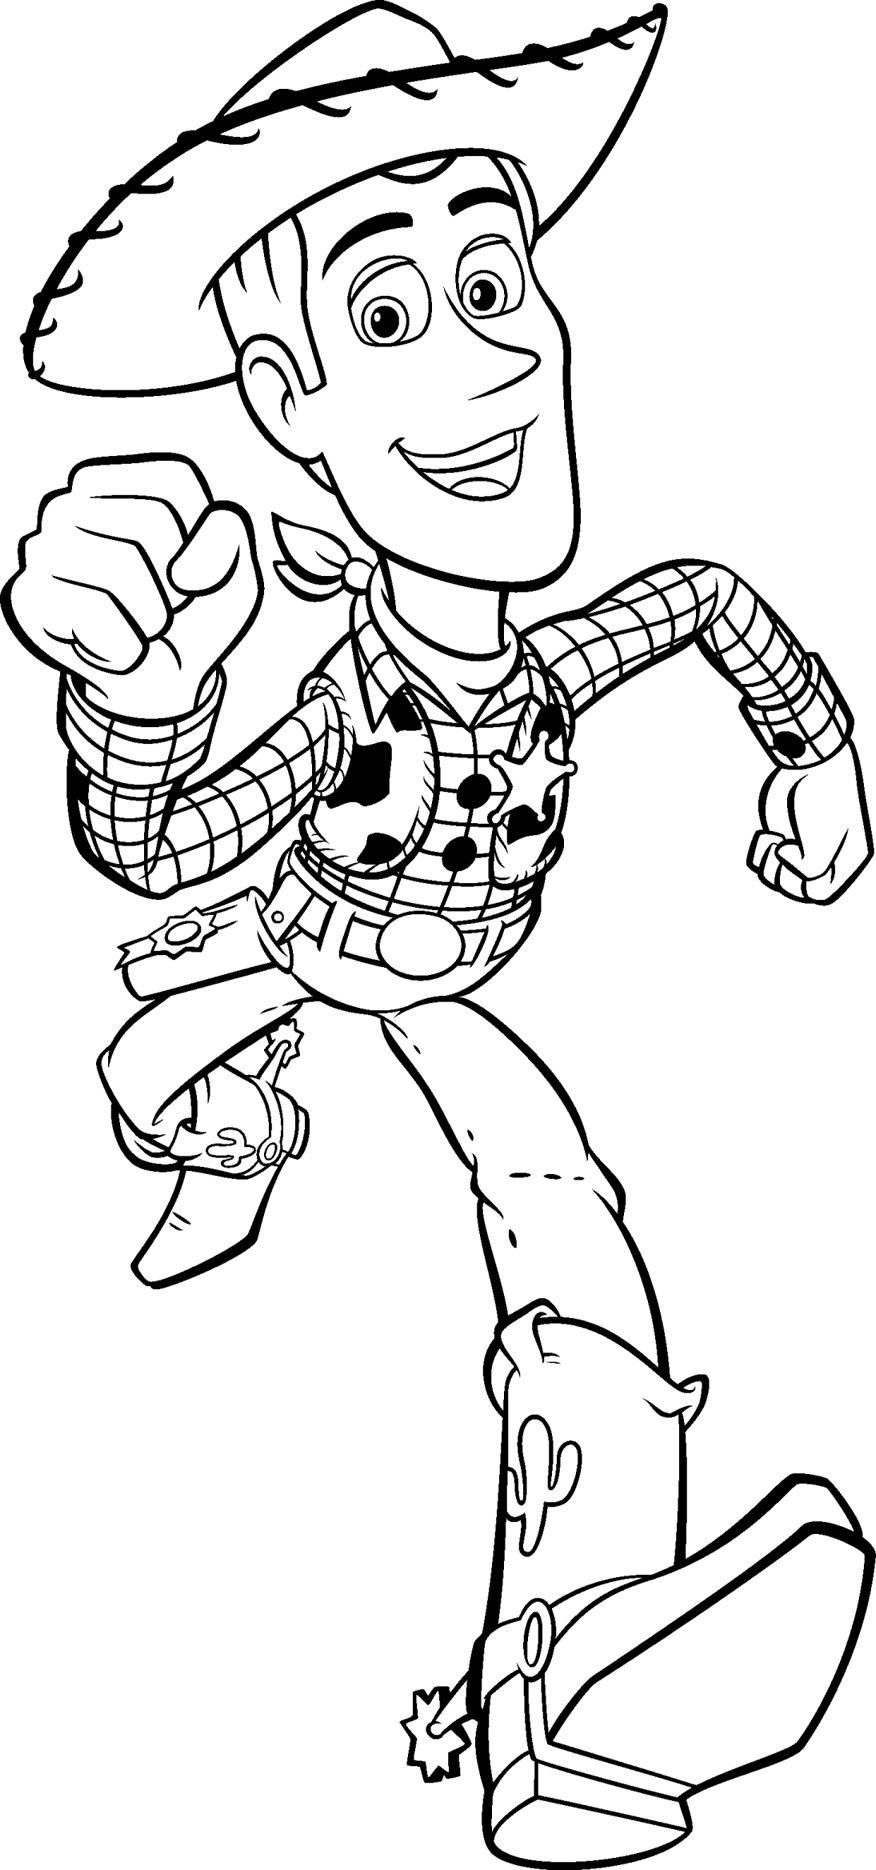 coloring sheet toy story coloring pages toy story printable coloring pages disney coloring book sheet coloring coloring story pages toy